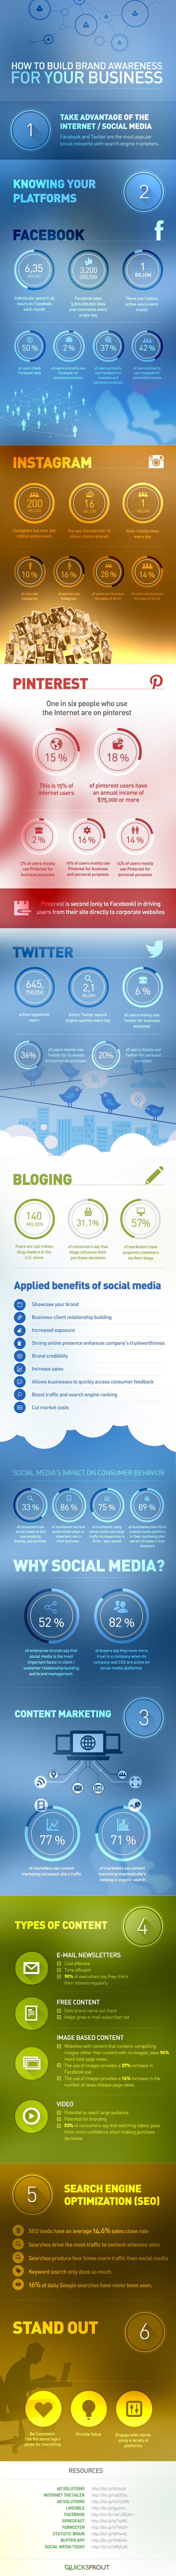 how-to-build-brand-awareness-infographic